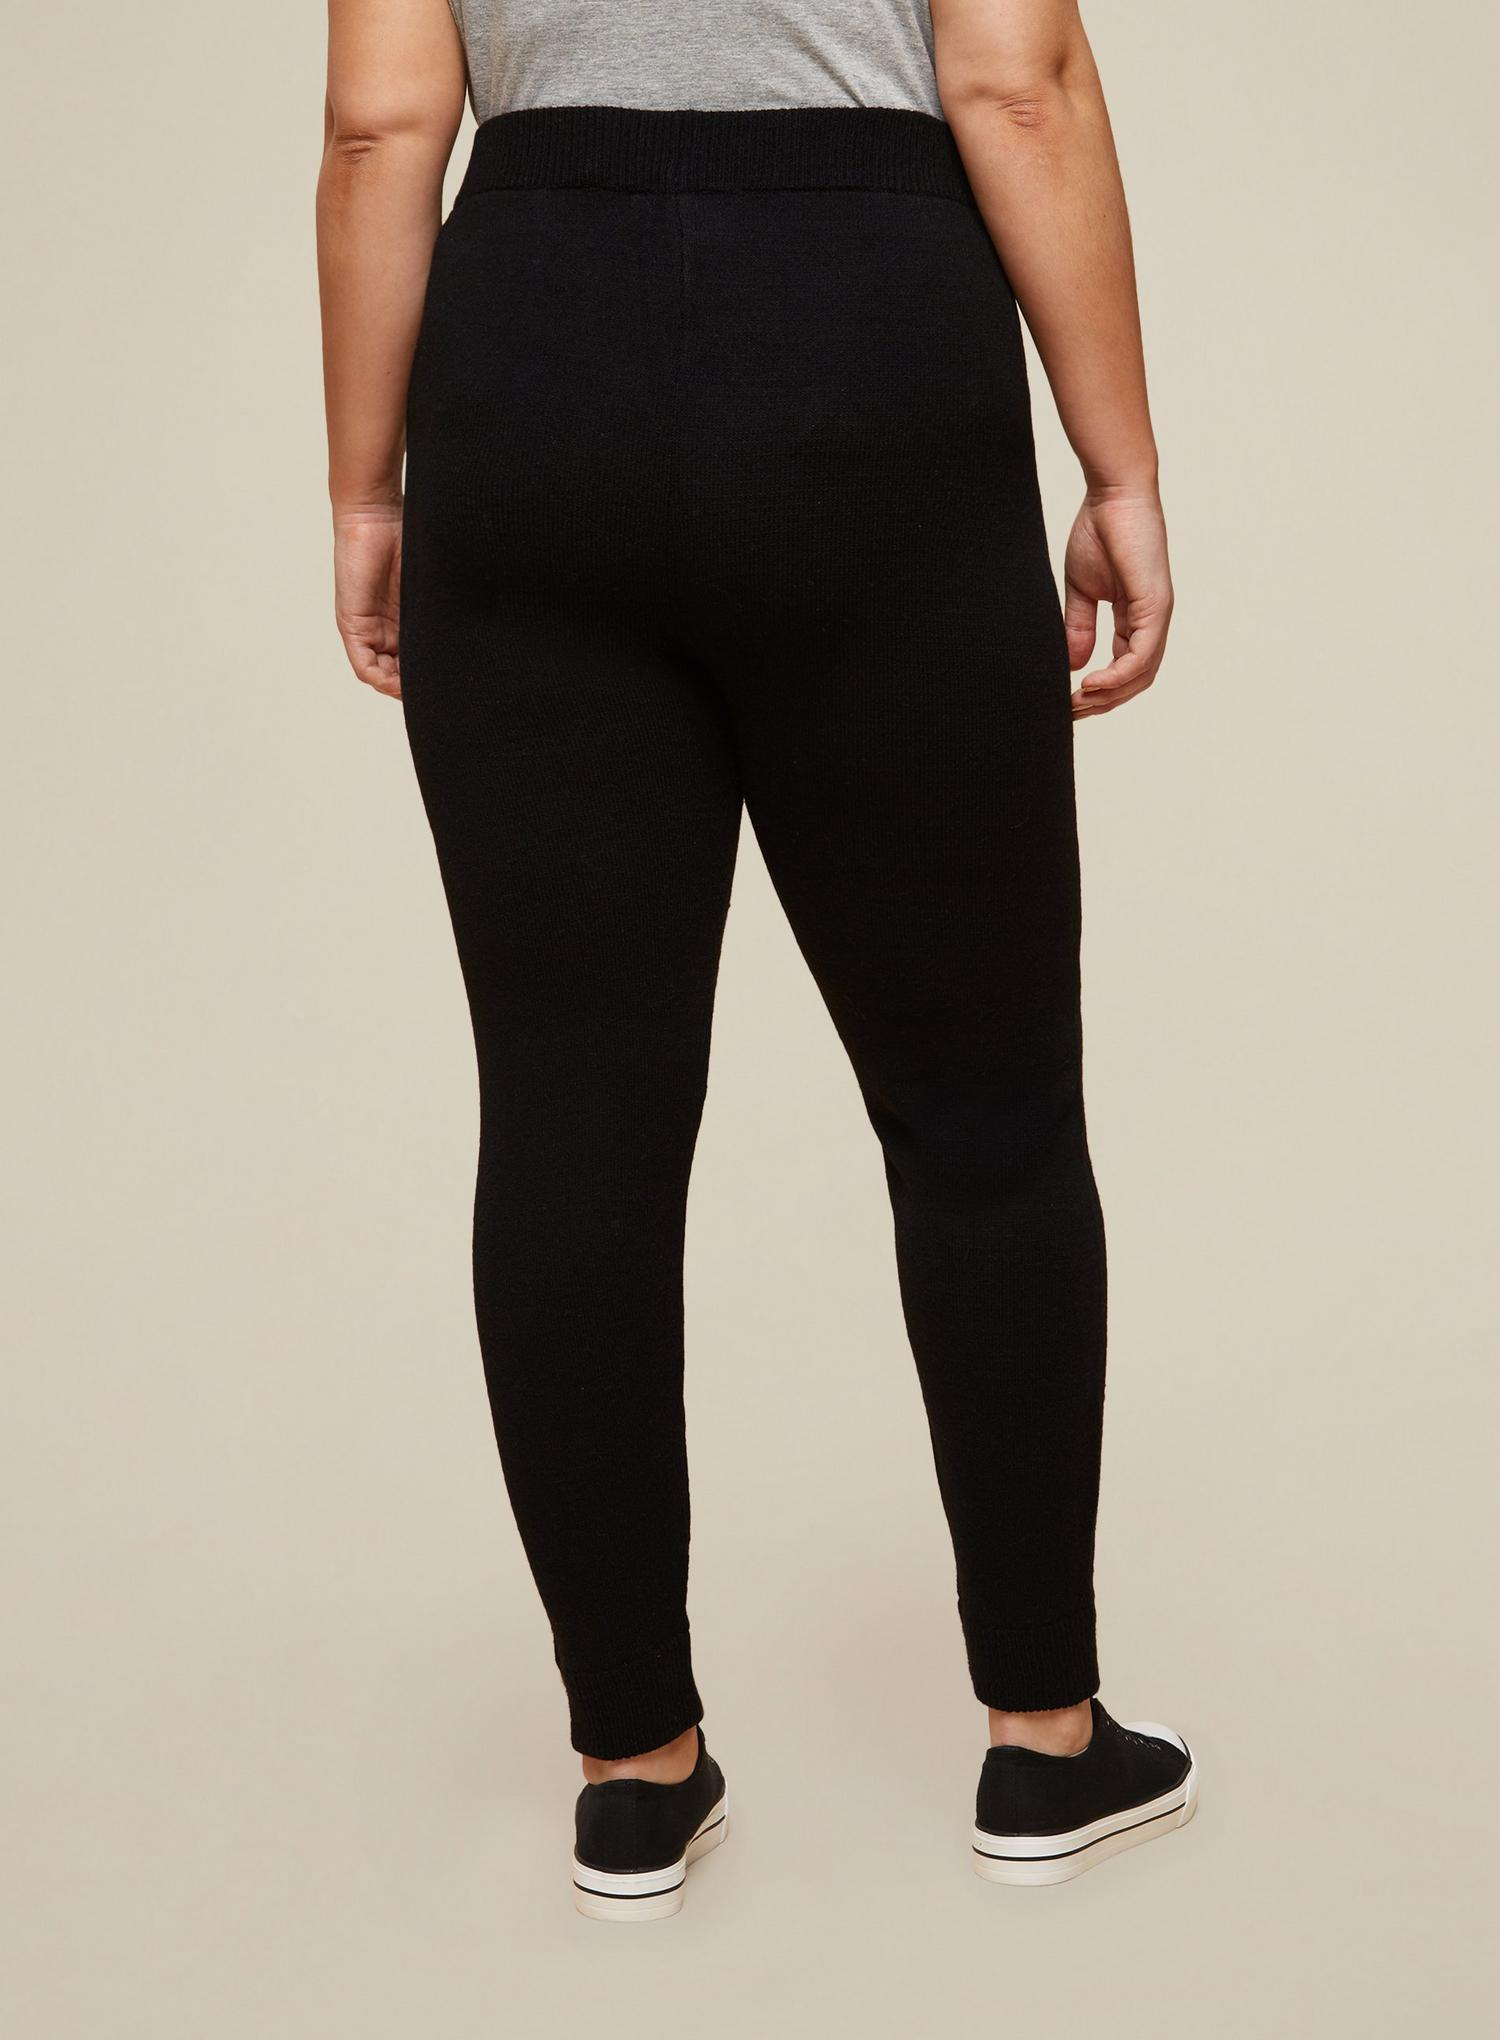 105 Curve Black Lounge Knitted Joggers image number 4